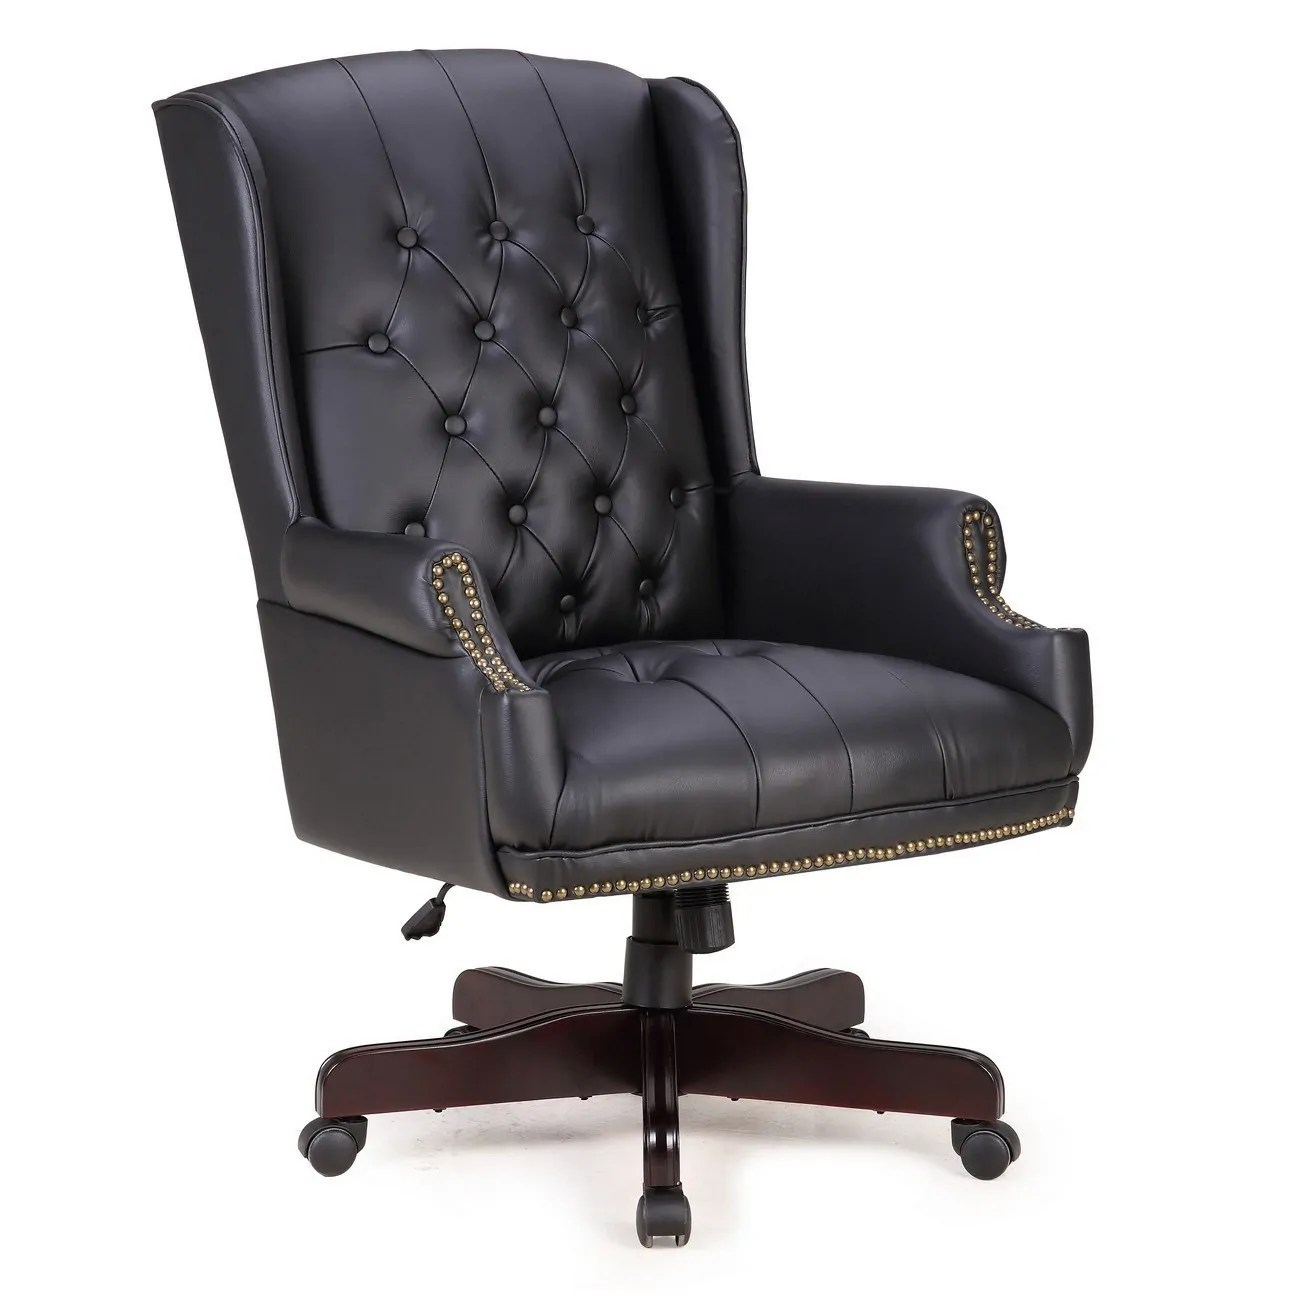 Most Comfortable Desk Chair 12 Most Comfortable Office Chairs Under 200 Happily